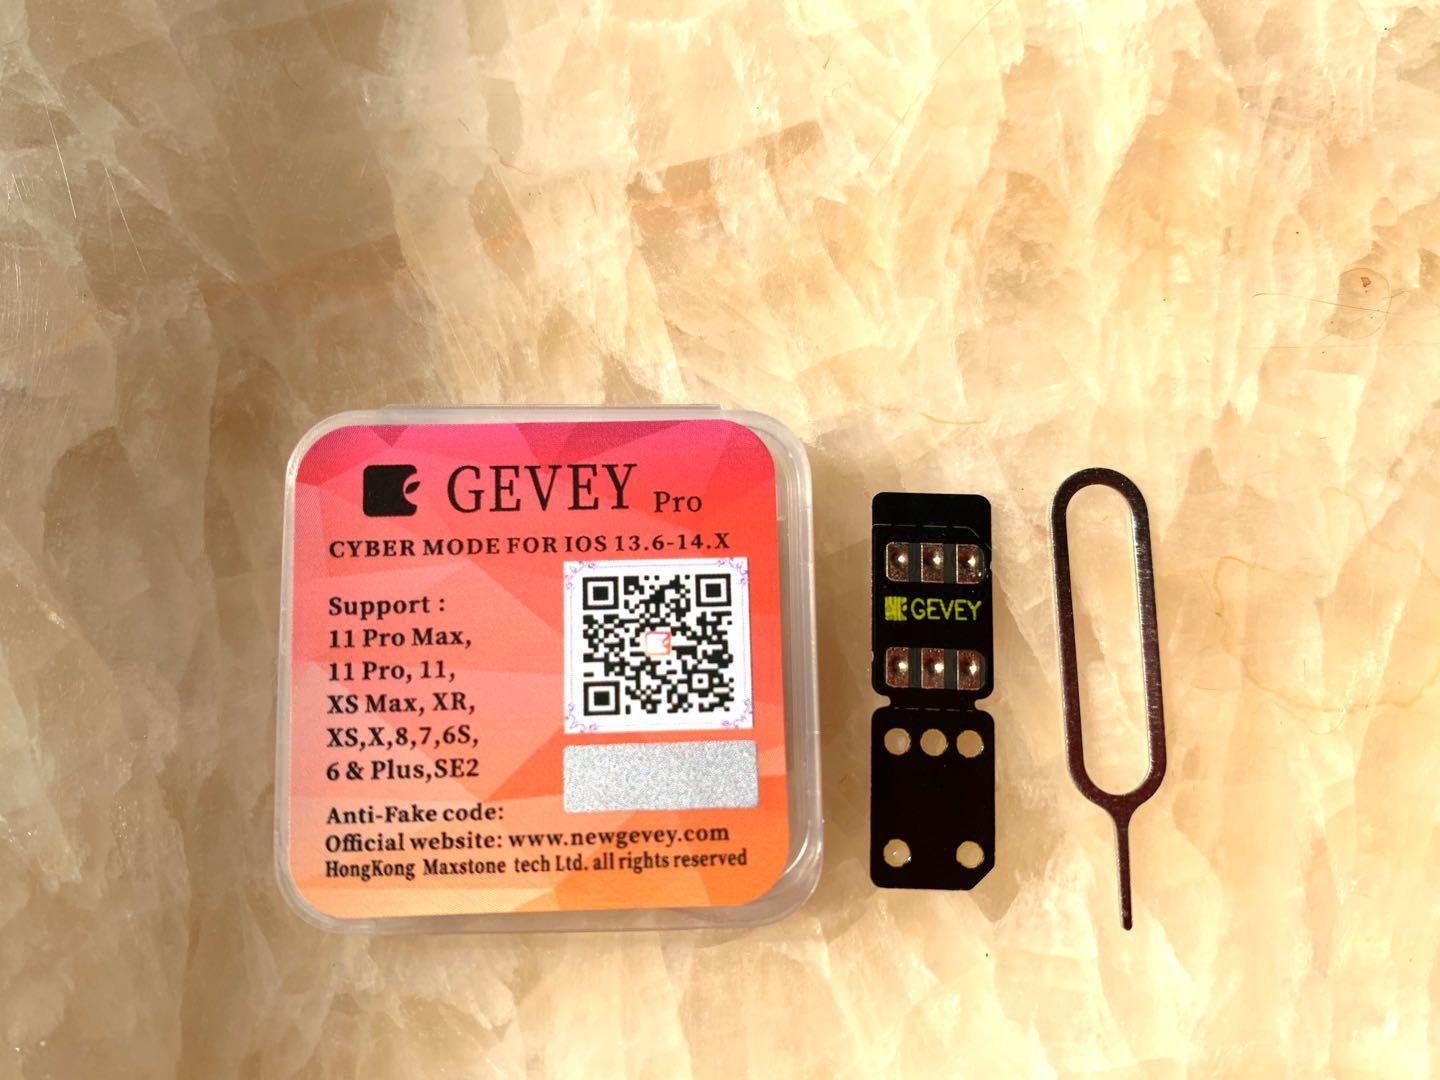 50pcs GEVEY-Pro v14 gv ios14.x 14.2 Unlocking card 5G for ip12 11 pro max 12p /11/8/7/6/5s/se/se2 carriers unlocking sim chip